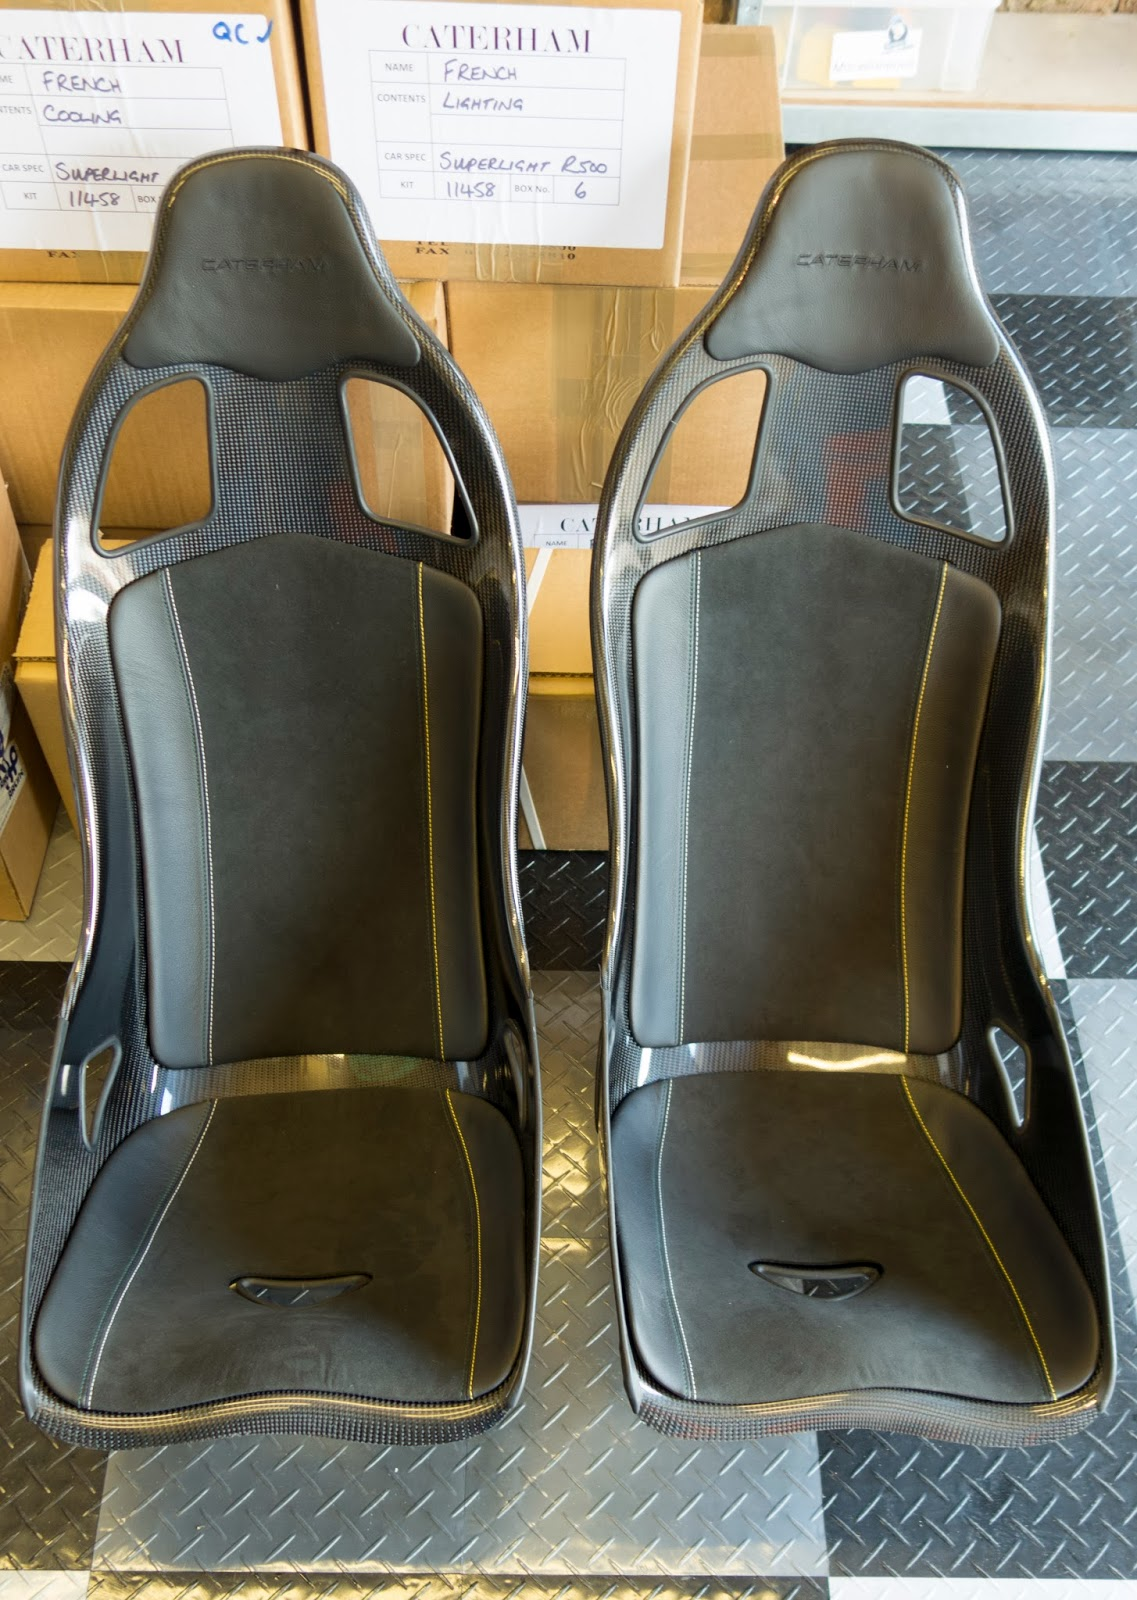 620R seats were delivered, then collected within four hours of delivery as they were 'pre-production' prototypes.